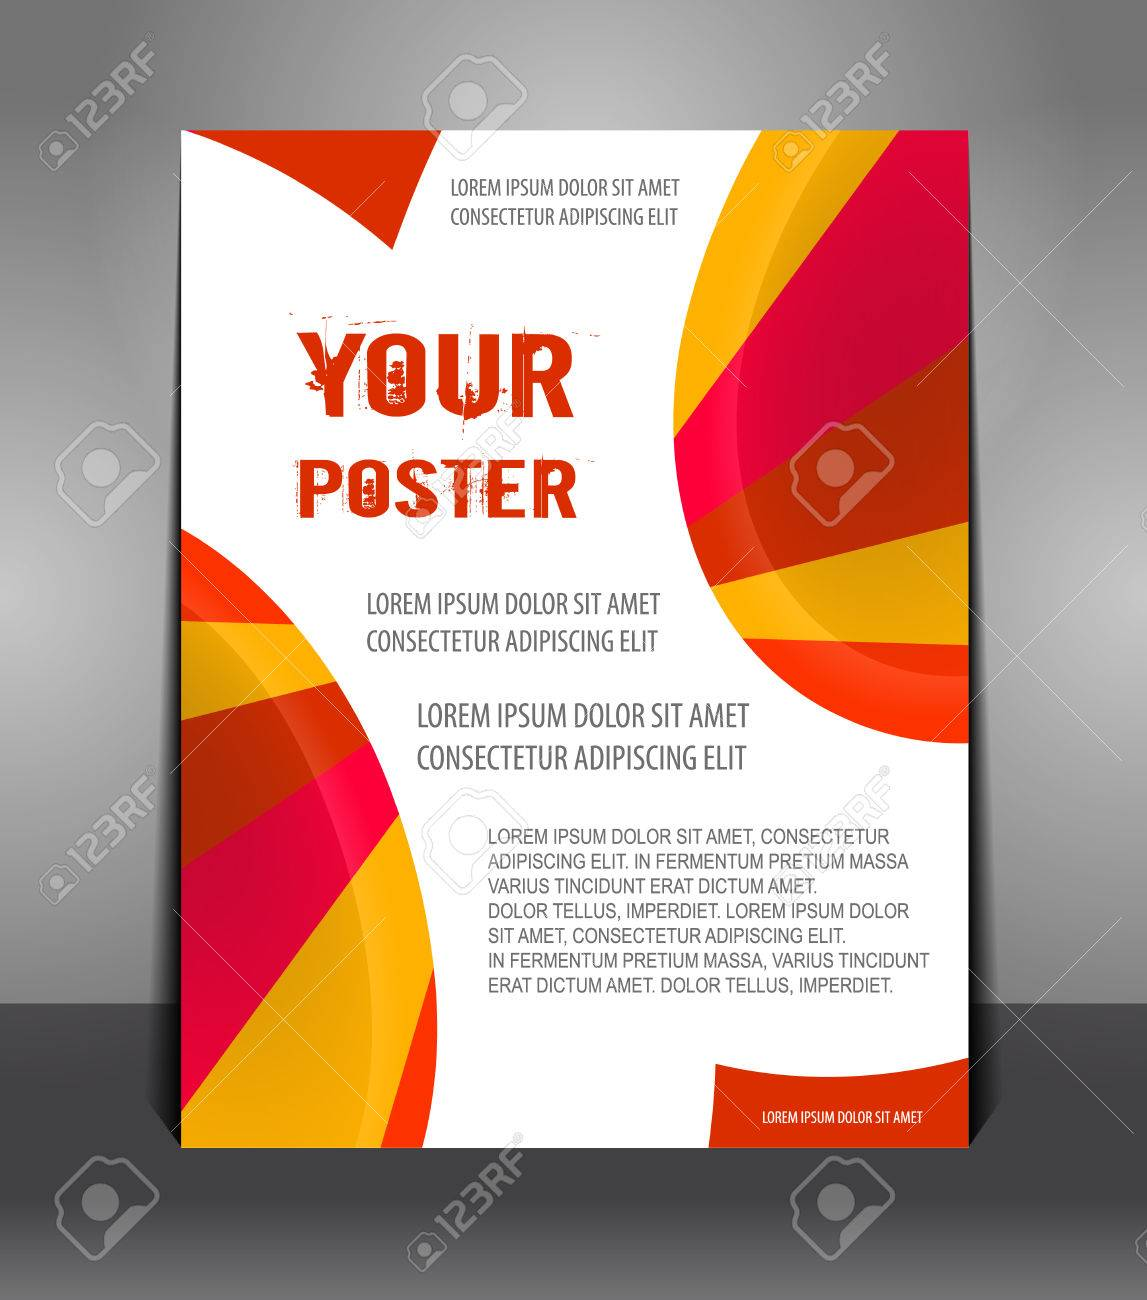 Poster design layout templates - Abstract Poster With Rays Flyer Design Content Design Layout Template Stock Vector 25163442